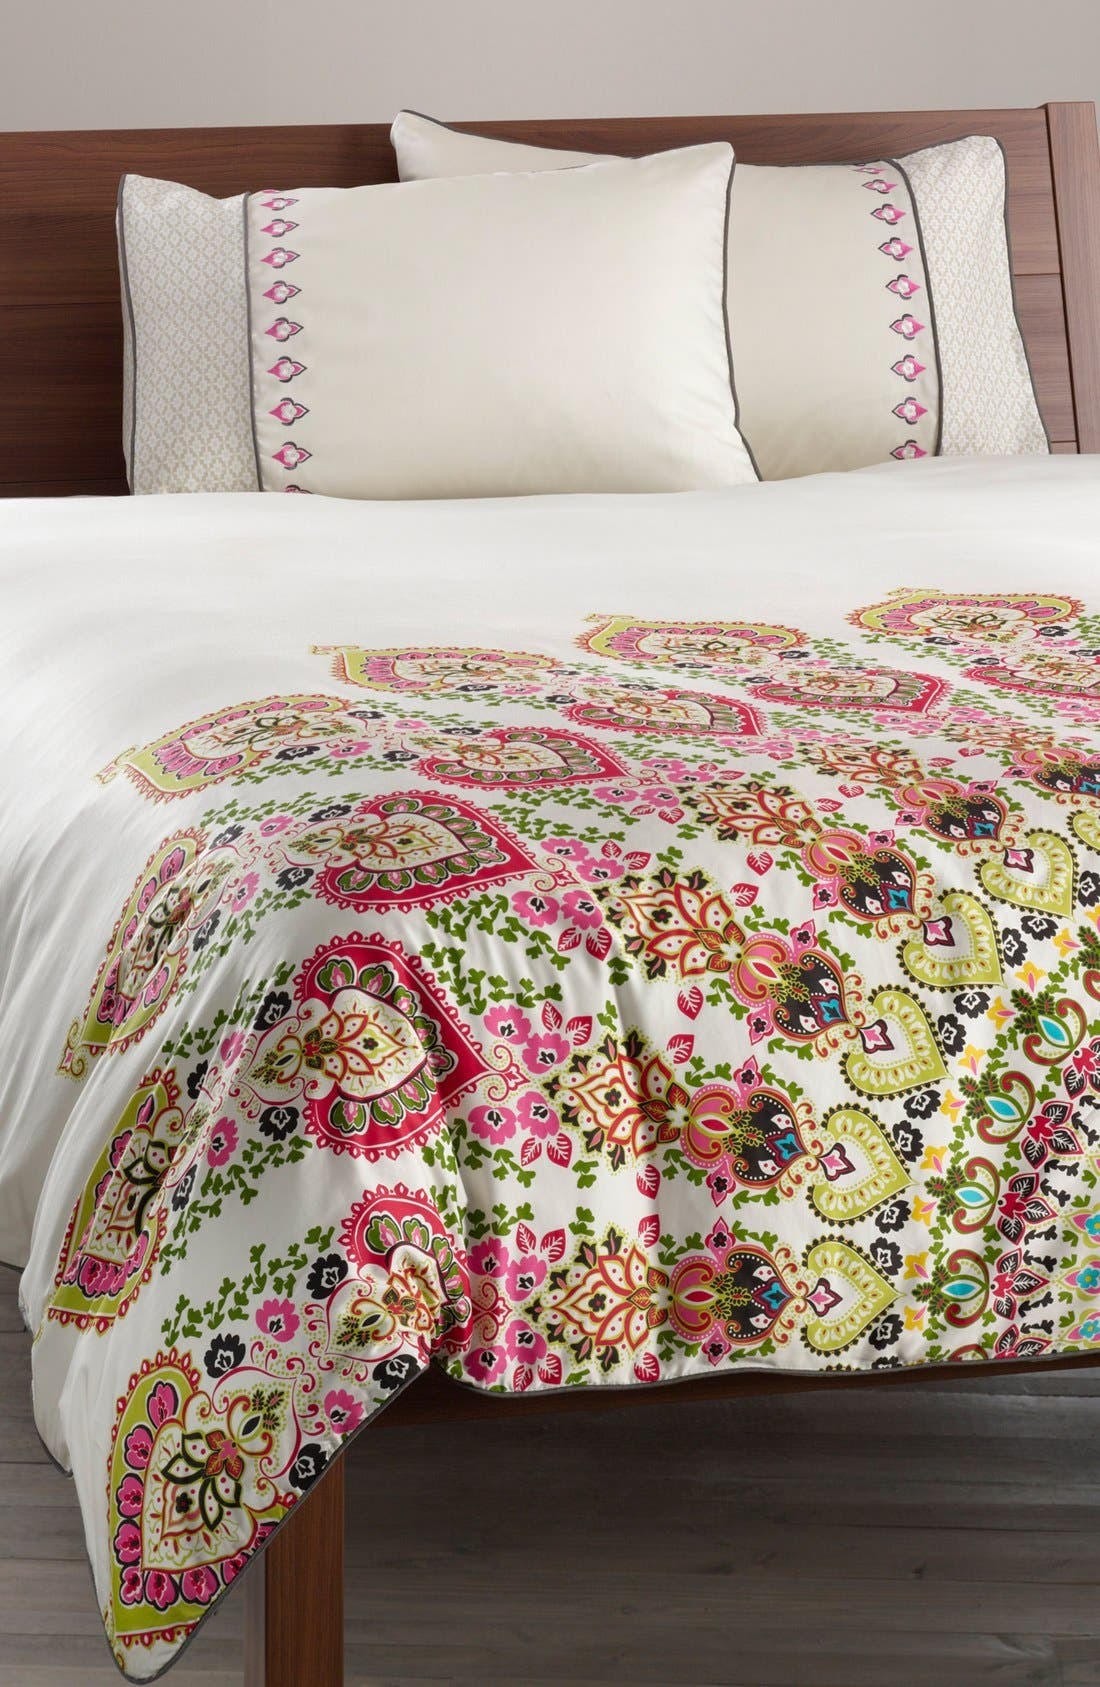 Alternate Image 1 Selected - KAS Designs 'Nymira' Duvet Cover